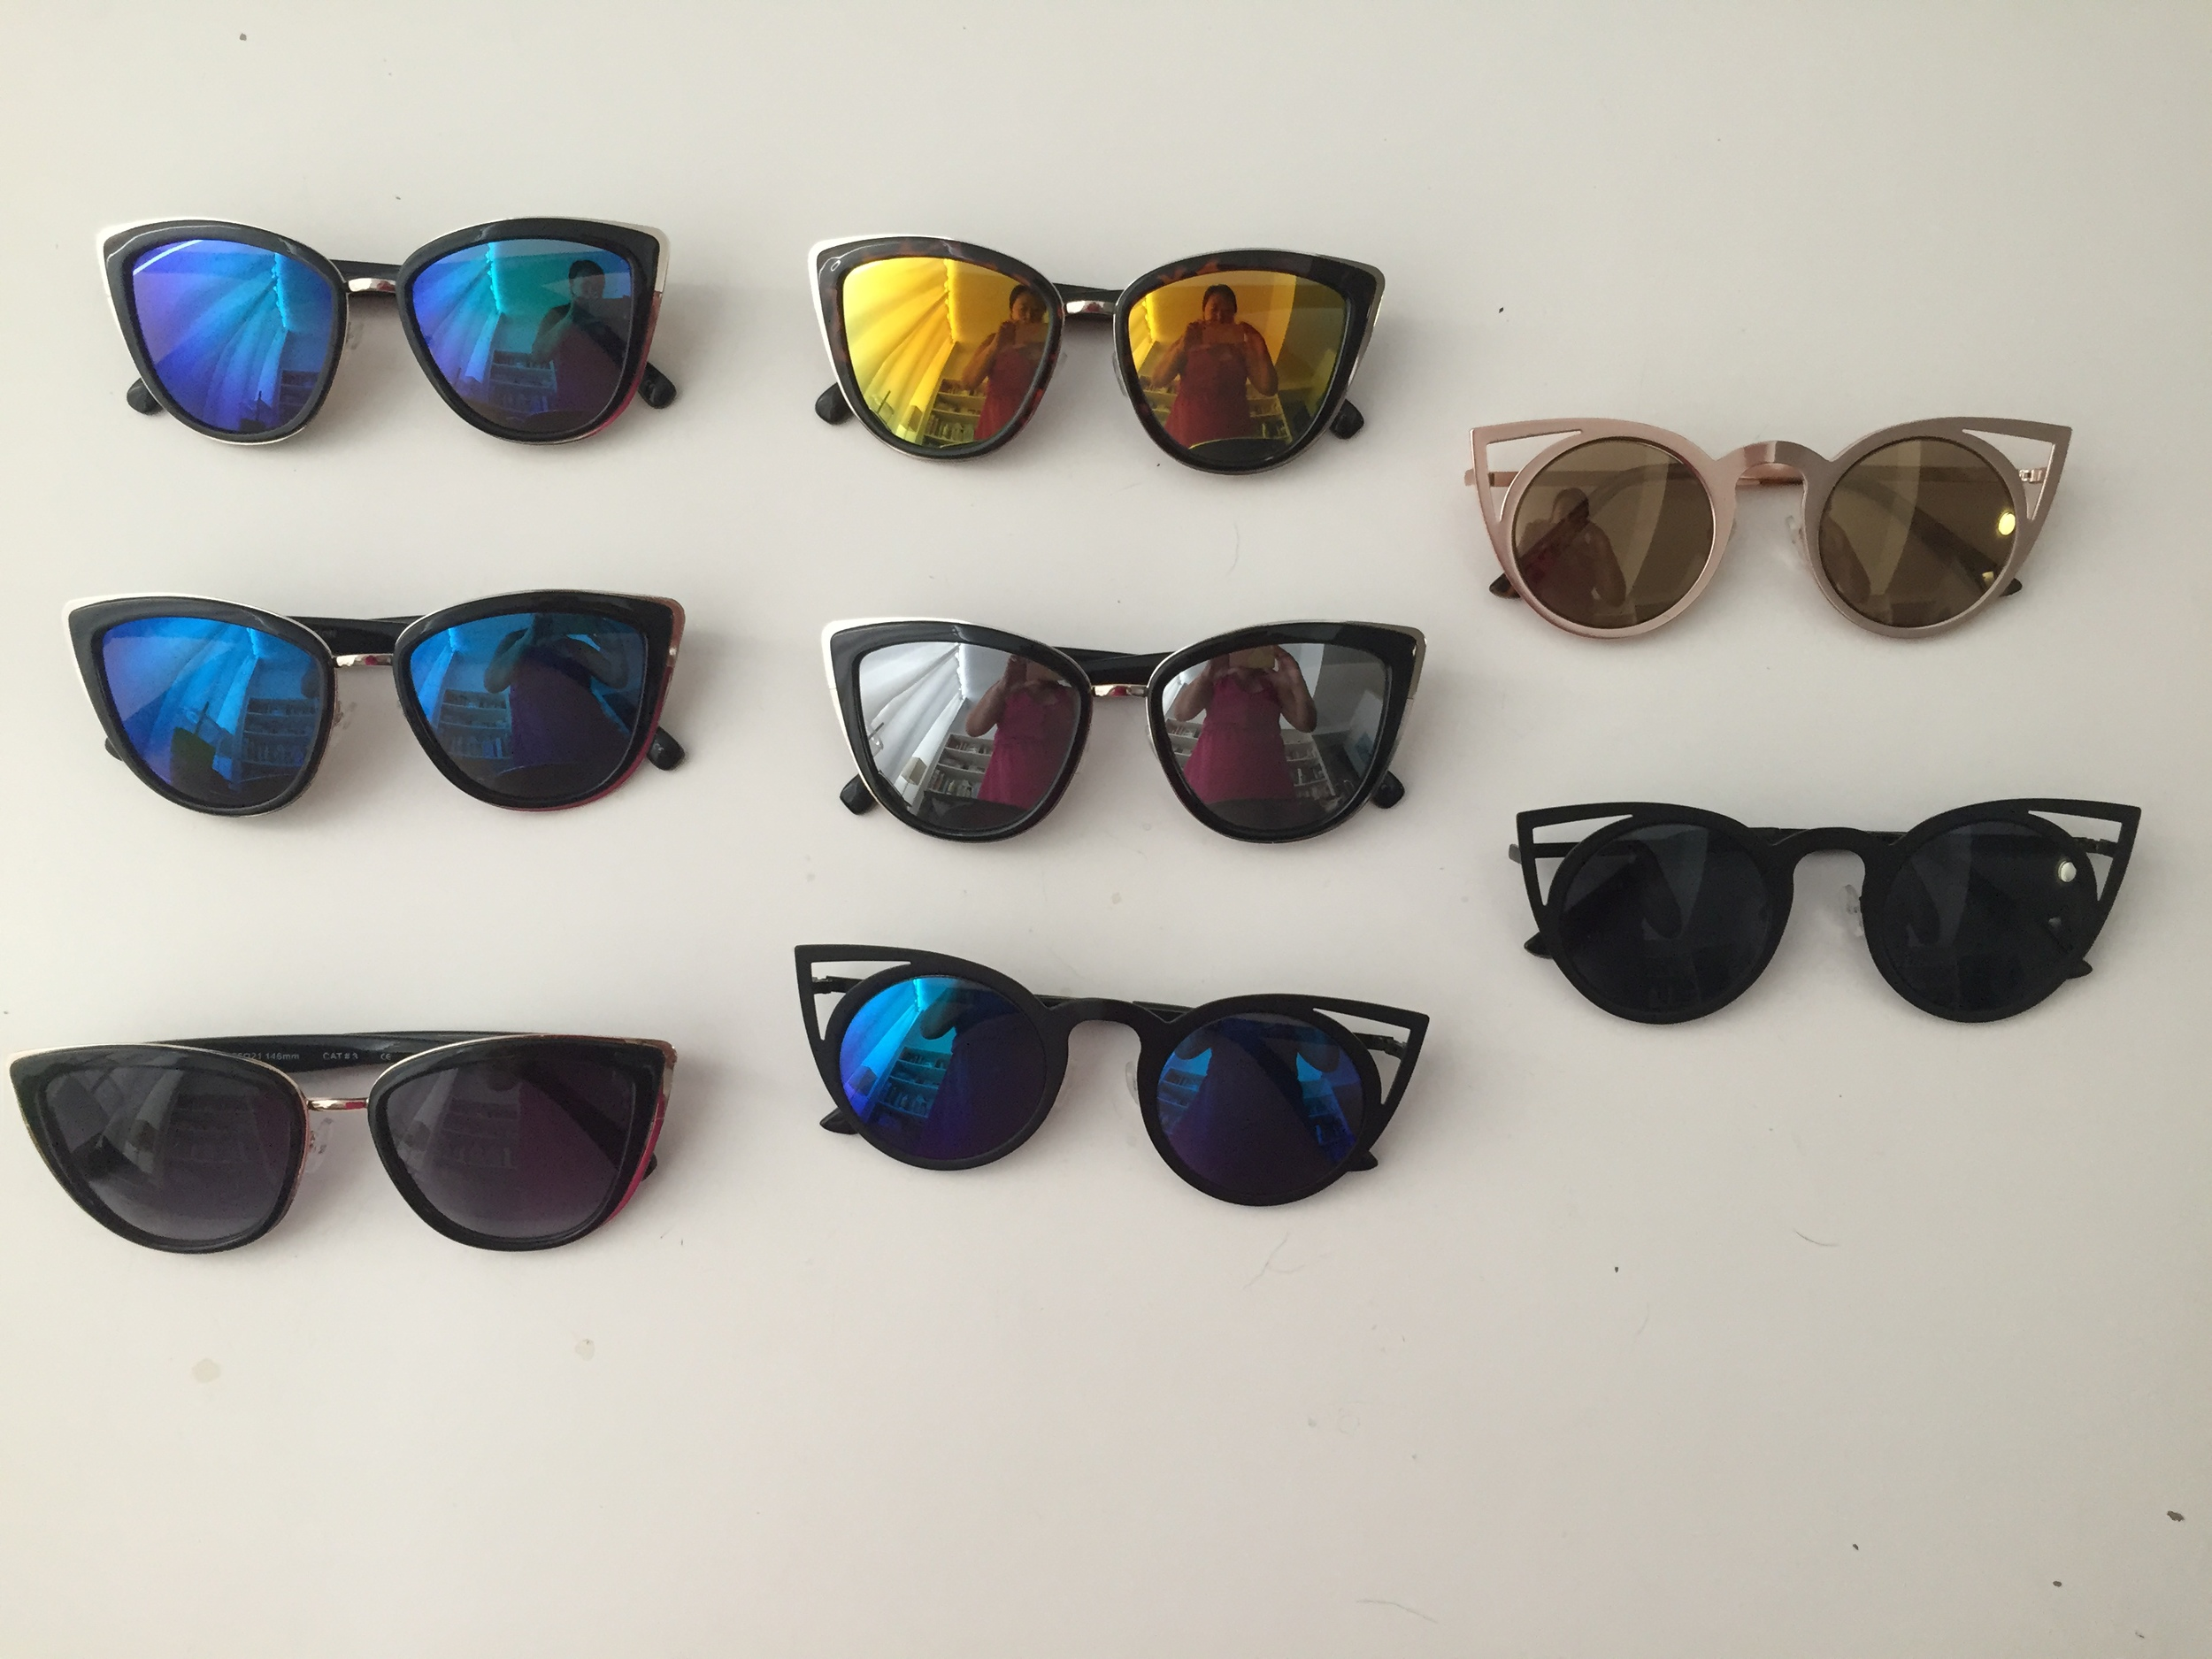 5 Pairs to the Left: Sunglass Spot  Style #4763 , $5 each  2 Pairs to the Right, Center Bottom Pair: Sunglass Spot  Style #3706 , $5 each